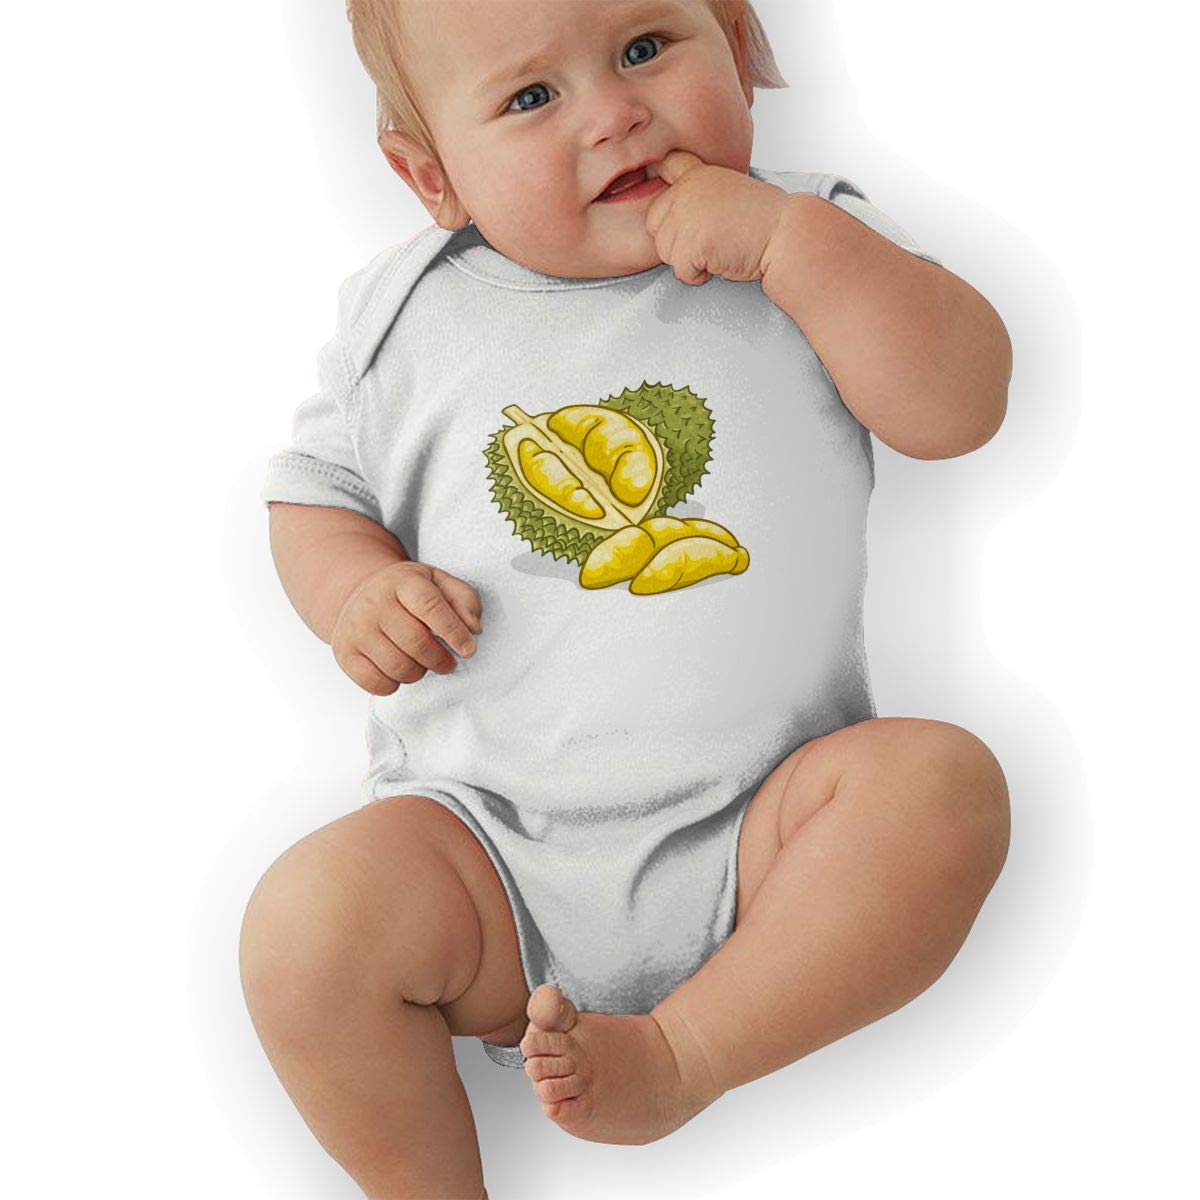 HappyLifea Durian Clipart Cartoon Newborn Baby Short Sleeve Romper Infant Summer Clothing